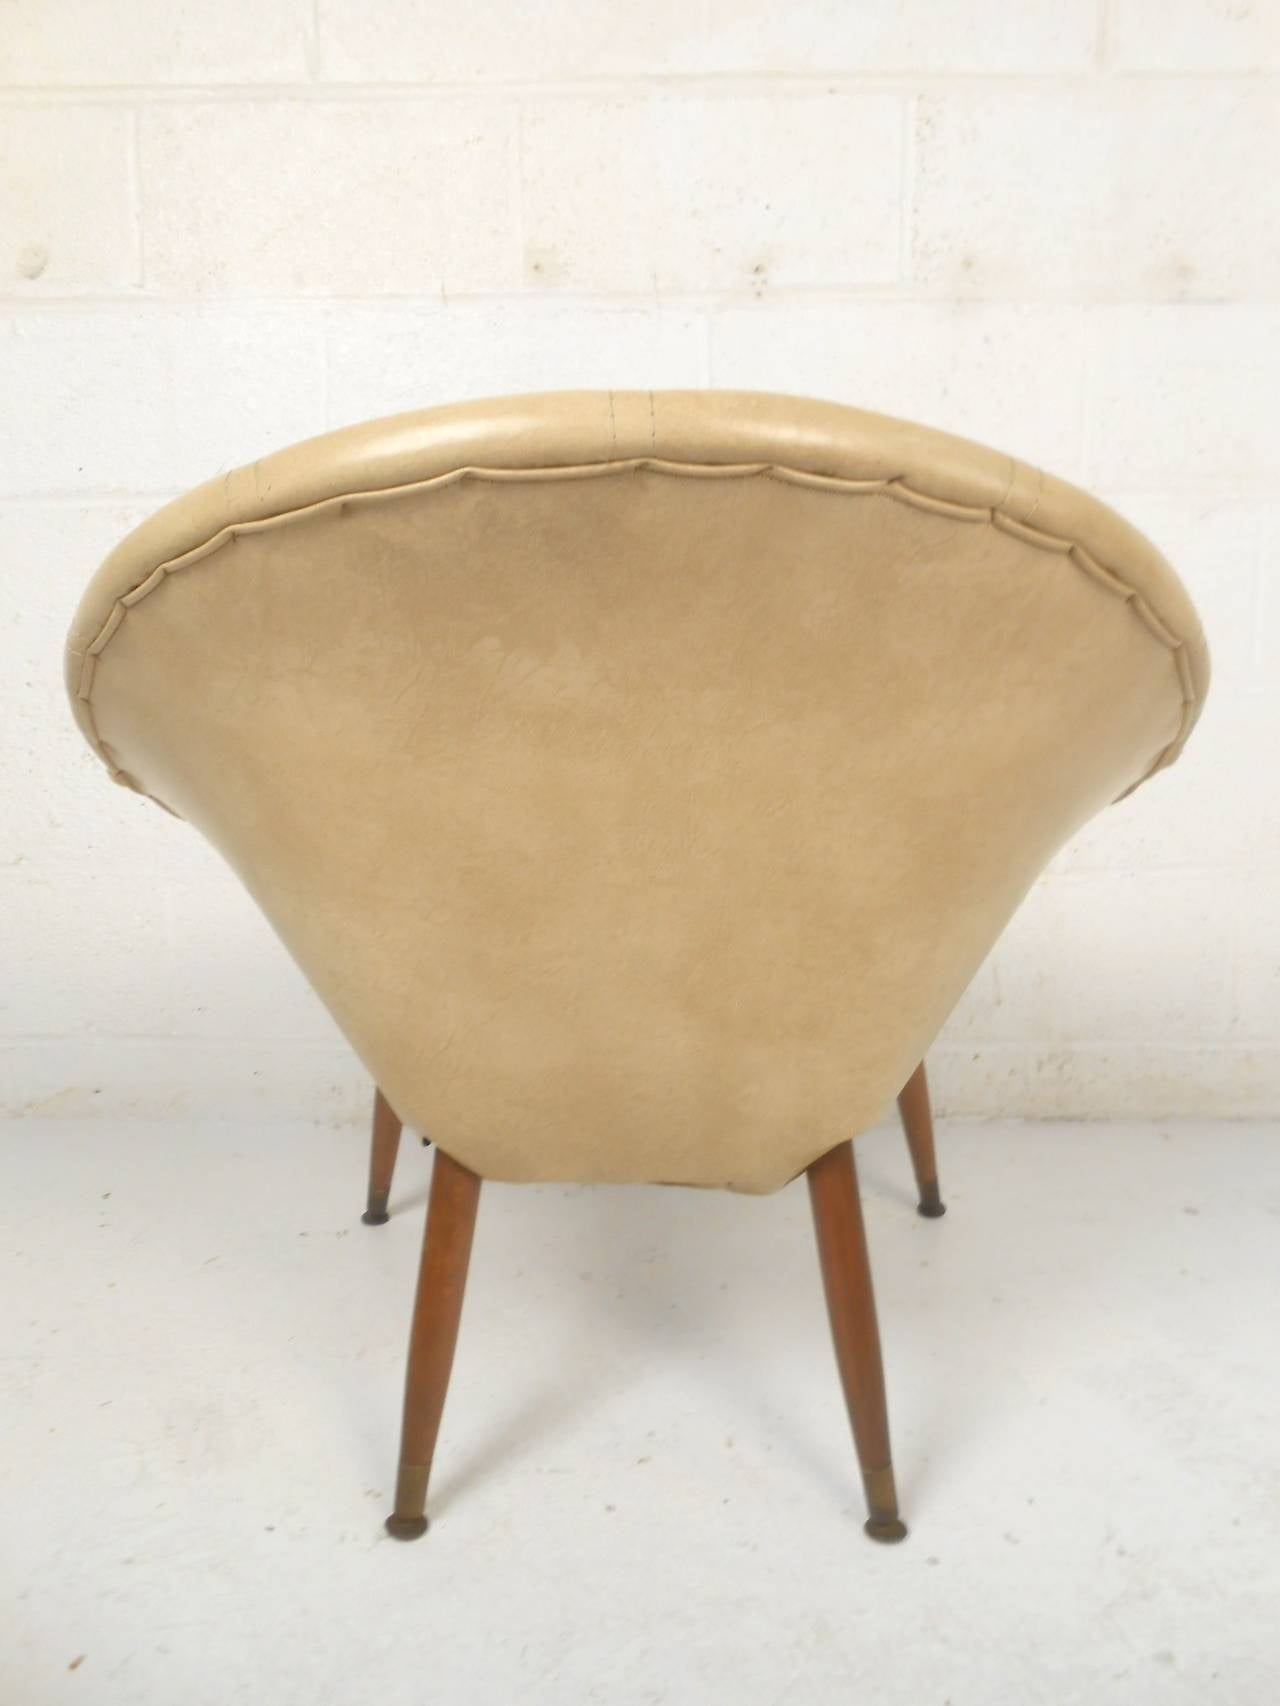 saucer chair for kids standing desk office depot round midcentury sale at 1stdibs